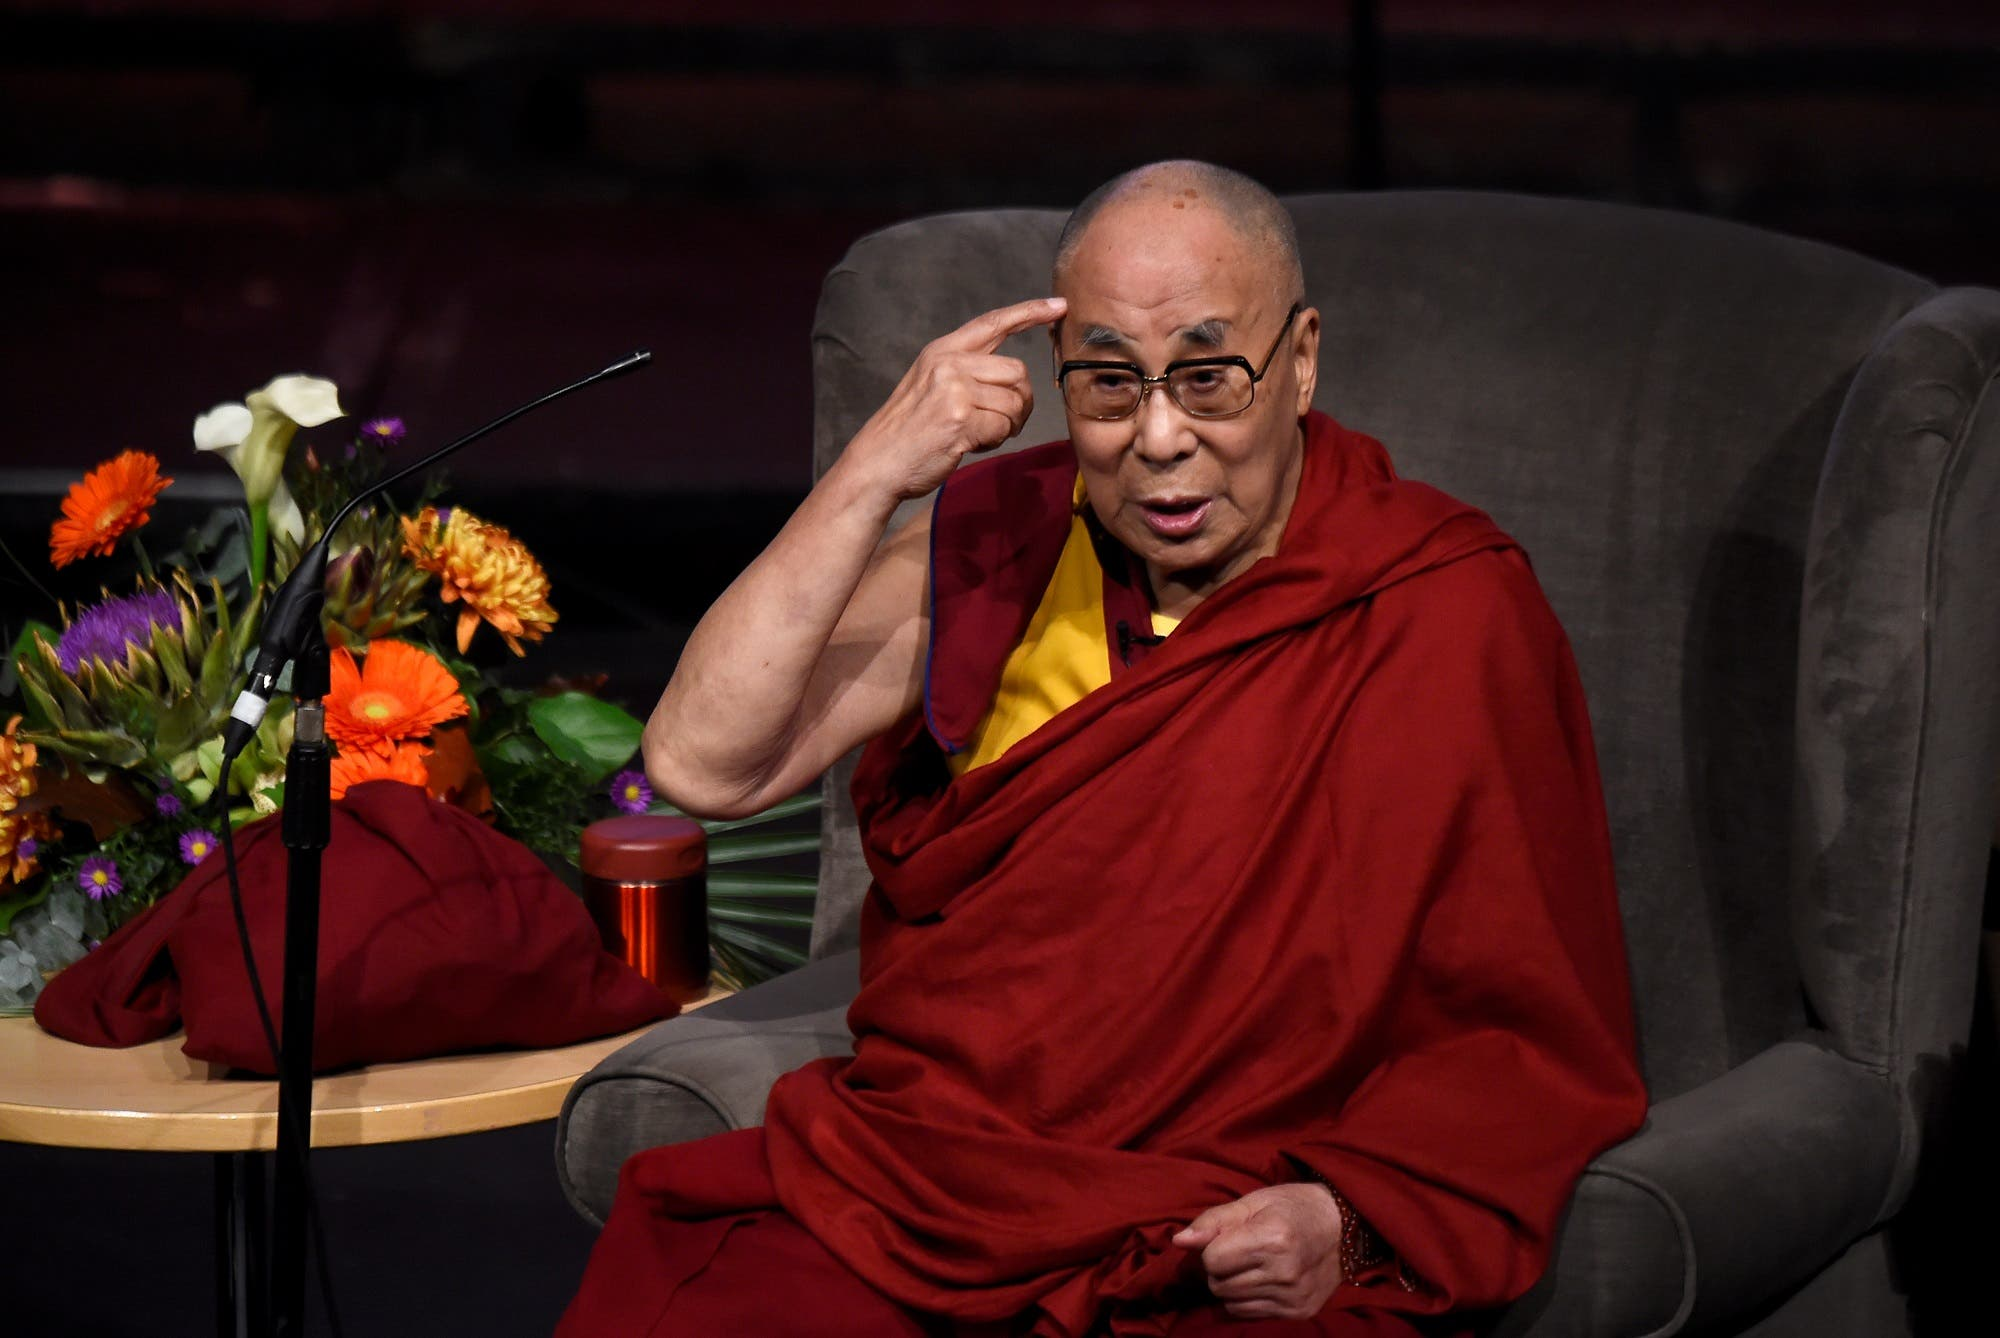 Dalai Lama has been a revered guest in India for more than six decades. (Reuters)